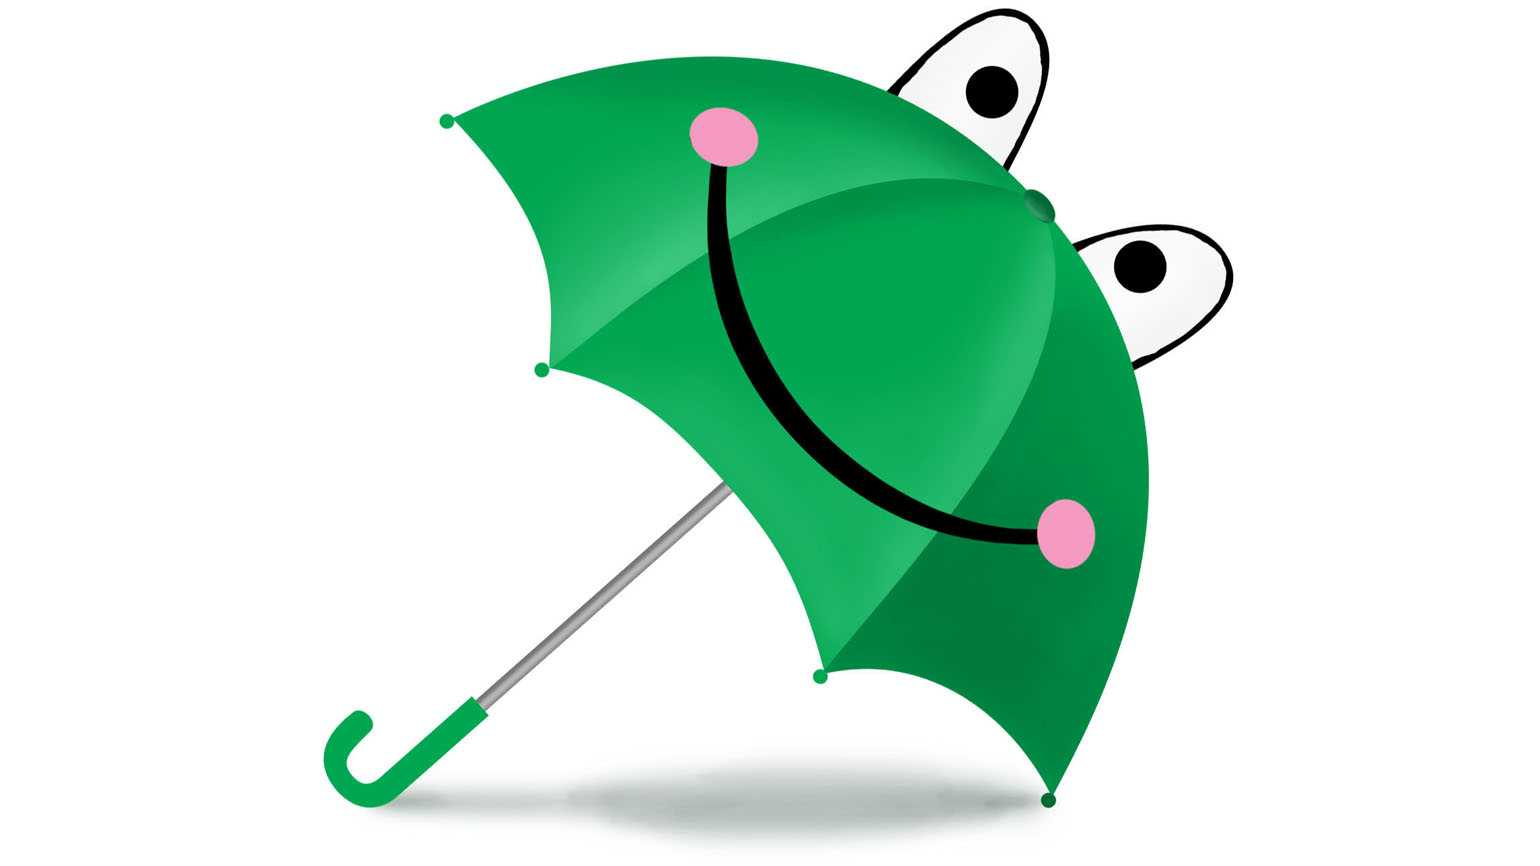 Someone cares singing in. Kindness clipart rain frog